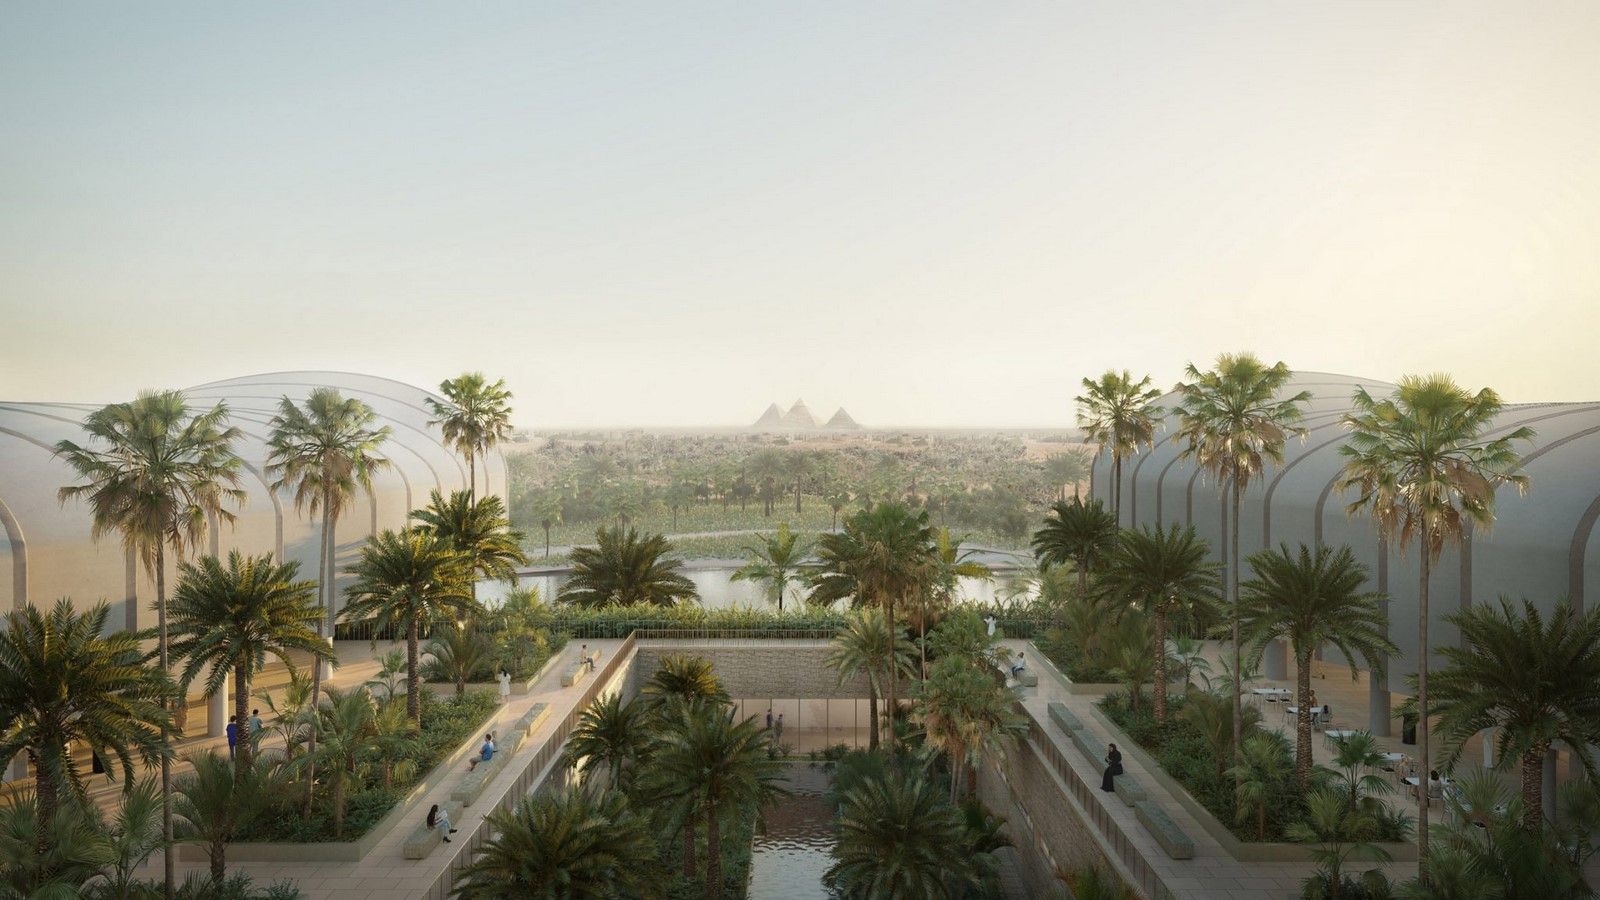 Construction begins on Cairo's New Global Heart Hospital designed by Foster + Partners - Sheet1